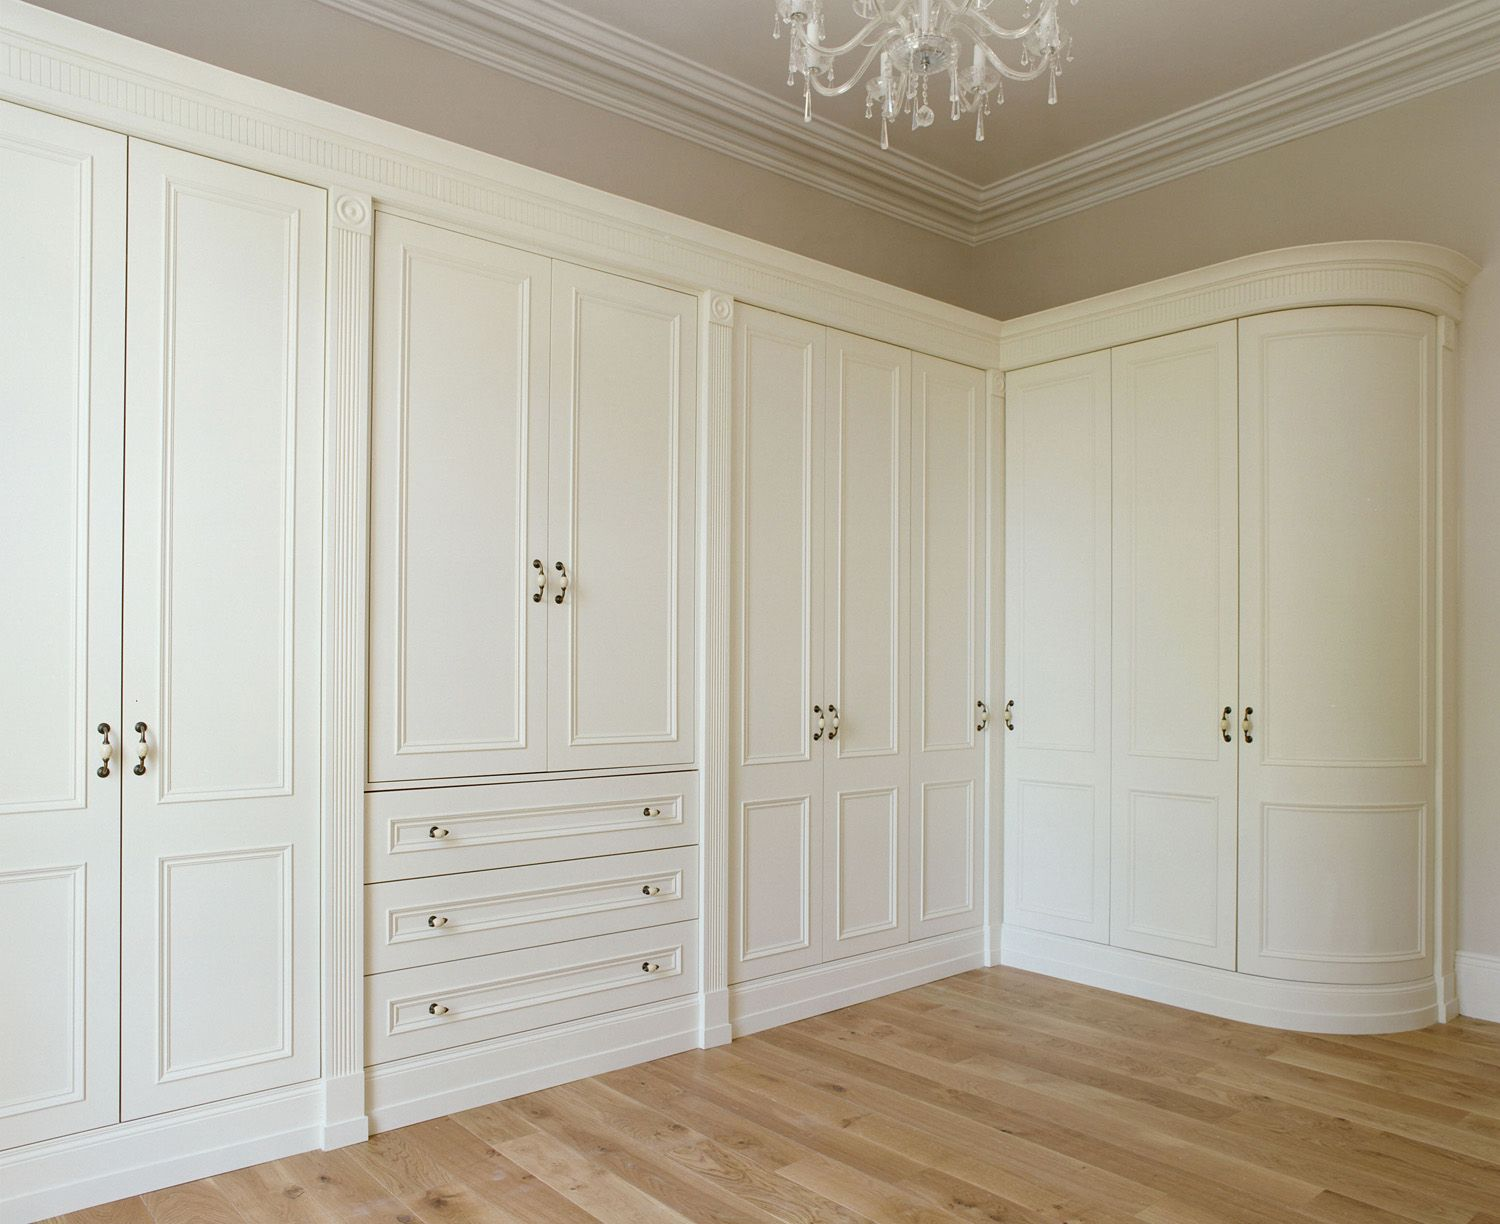 Newcastle design bedroom furniture fitted wardrobes for Bedroom ideas with built in wardrobes